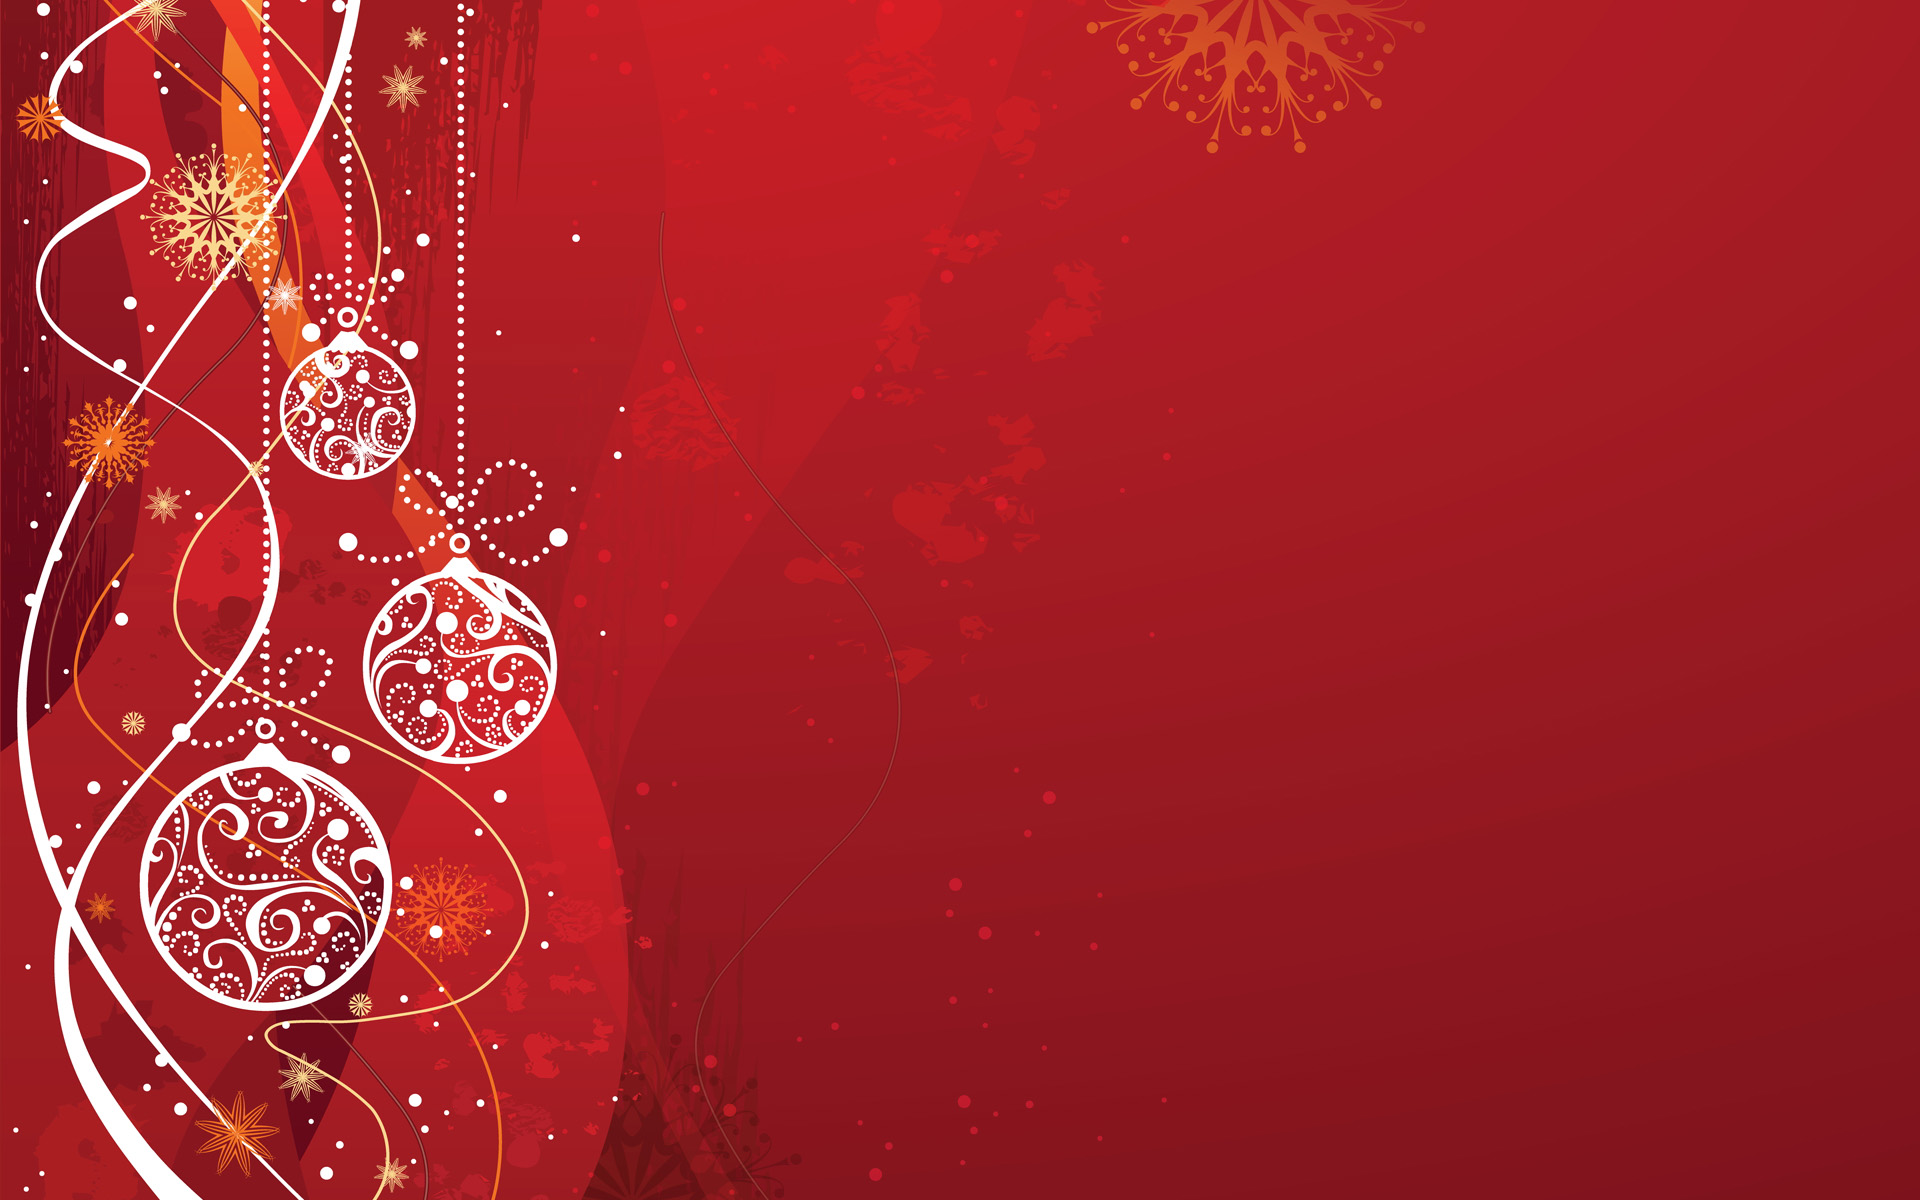 Christmas Background Hd.Red Christmas Background Hd Wallpaper